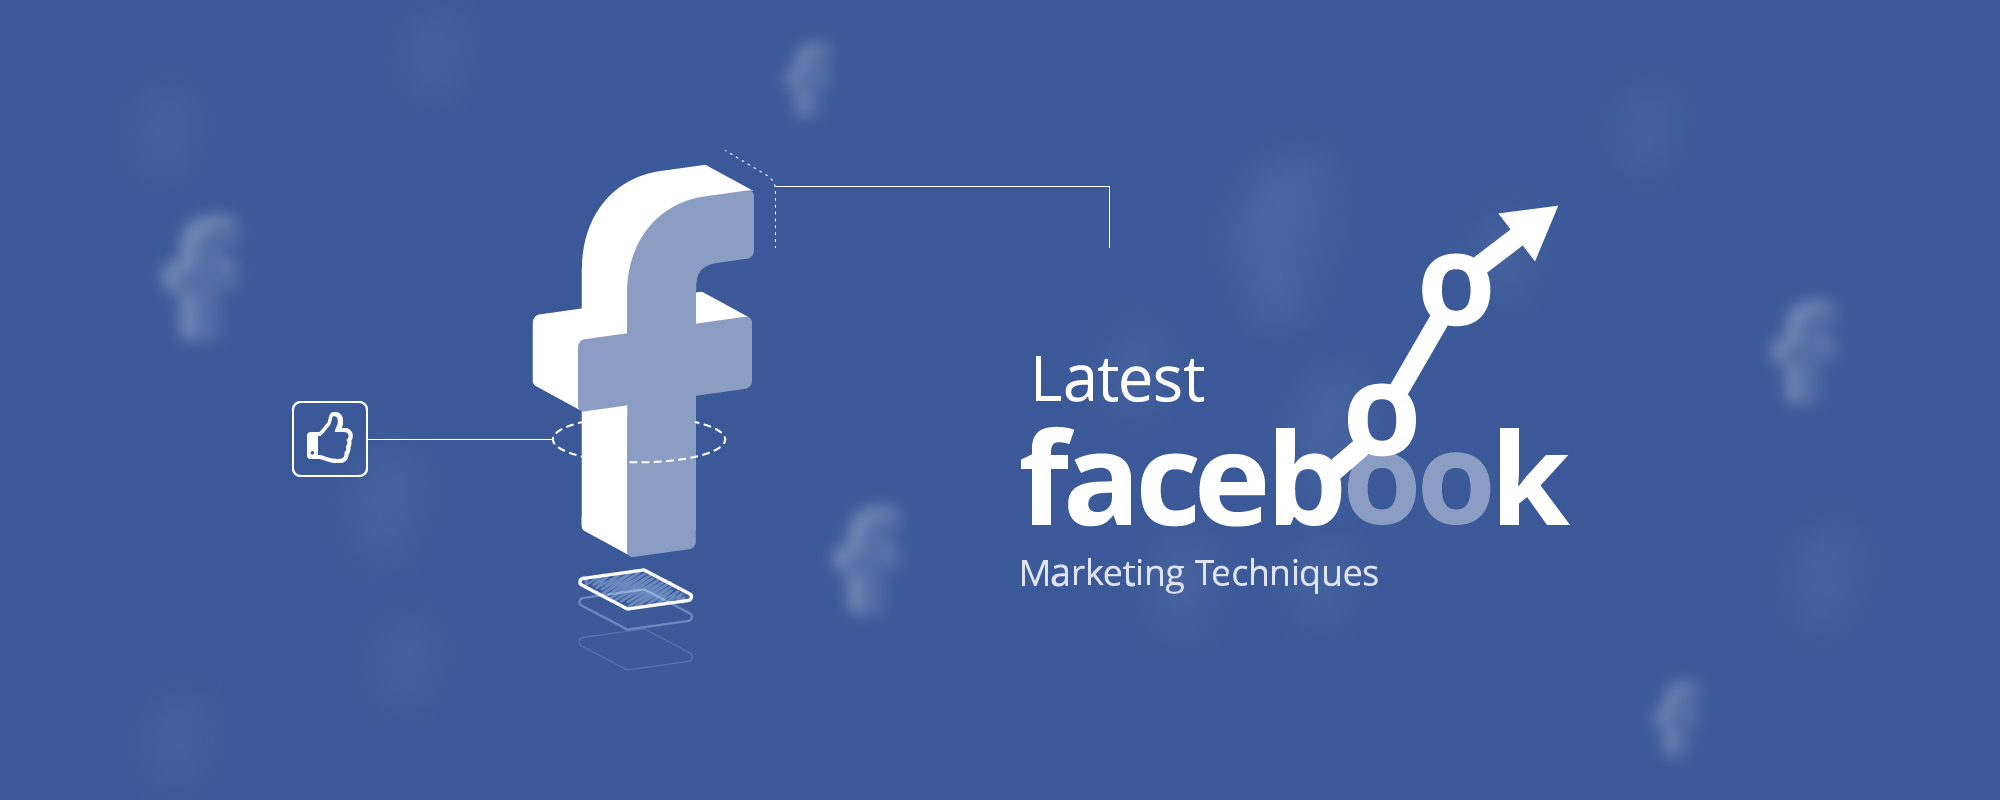 Gear Up Your Facebook Marketing Game with These Latest Techniques